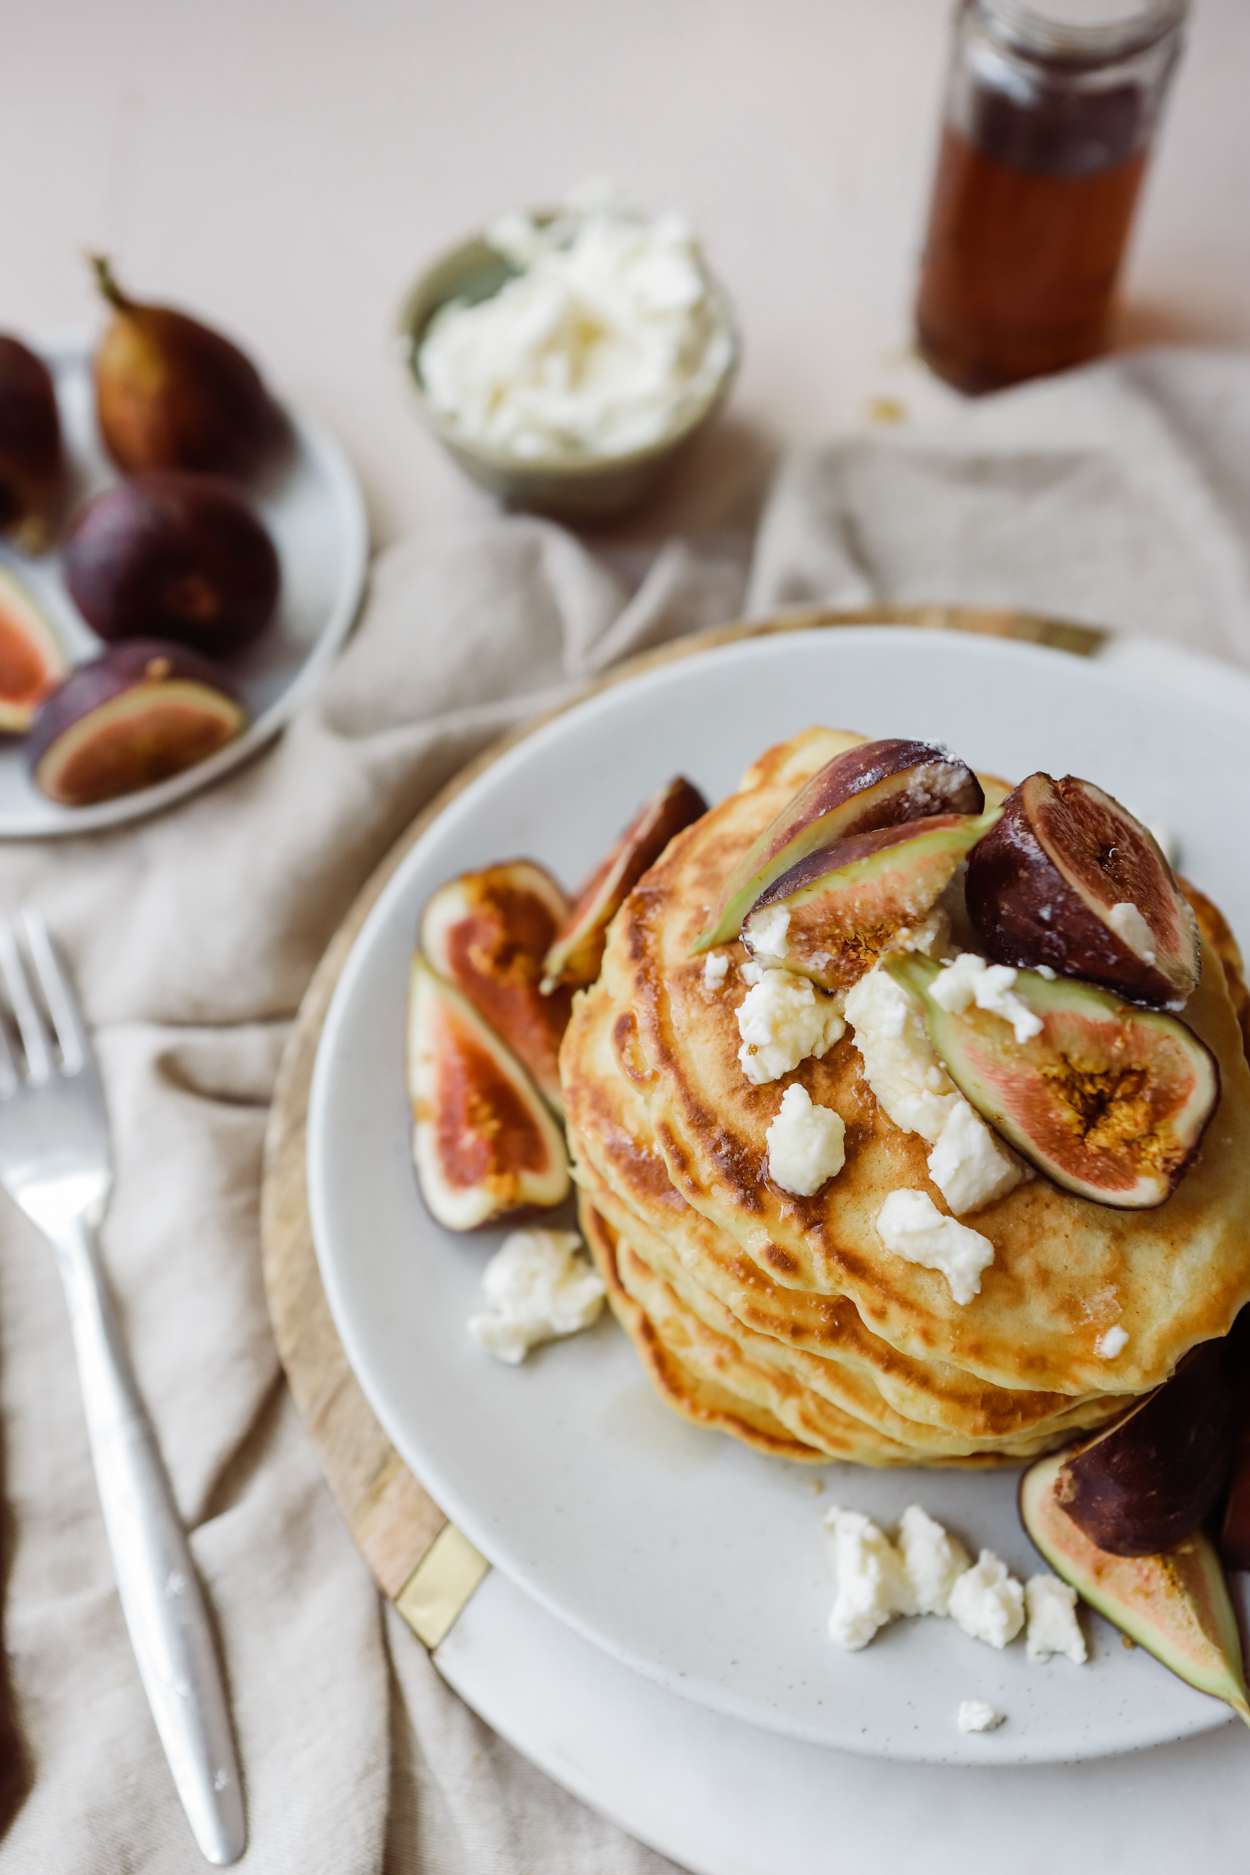 A stack of pancakes on a white plate topped with fresh figs and ricotta cheese, drizzled with honey